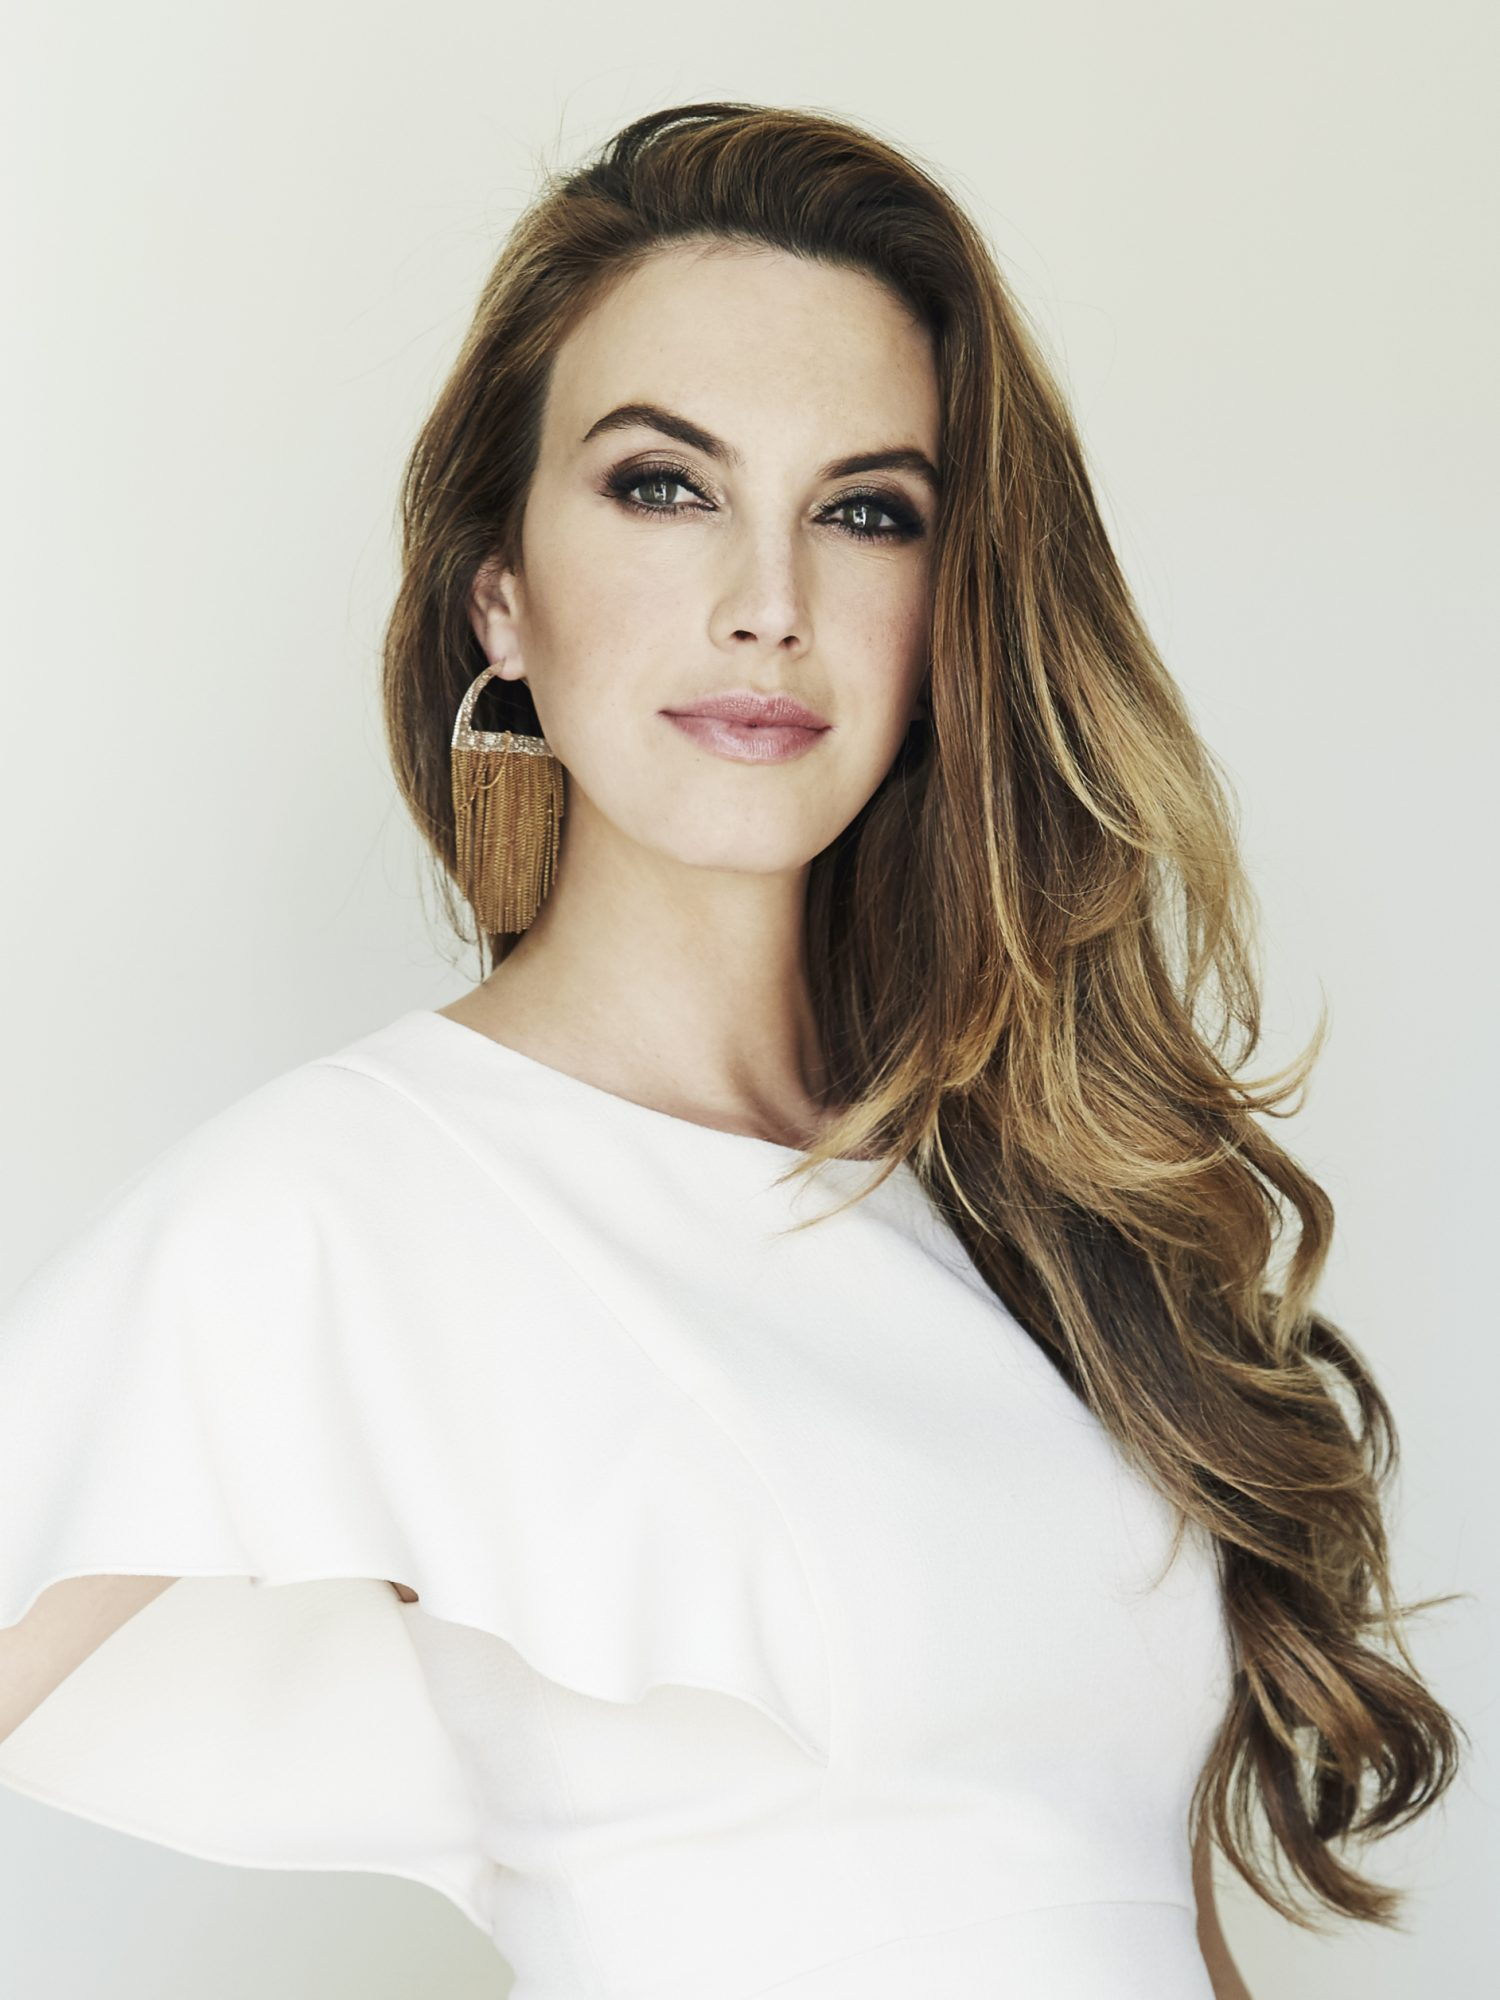 Elizabeth Chambers Hammer Held a Seriously Impressive Girl Scout Cookie Record As a Kid